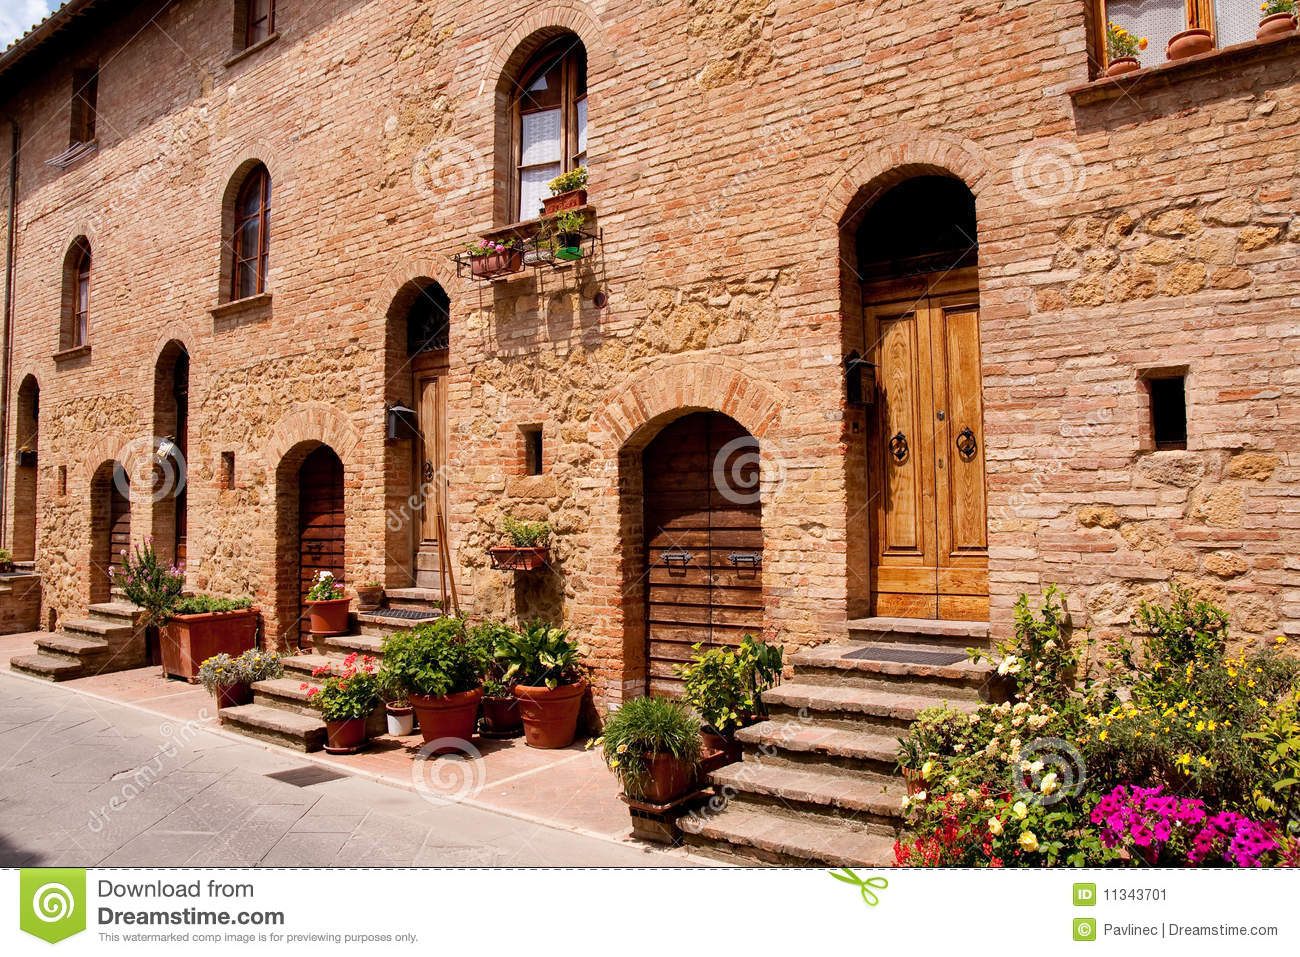 tuscan historic architecture stock image - image: 11343701